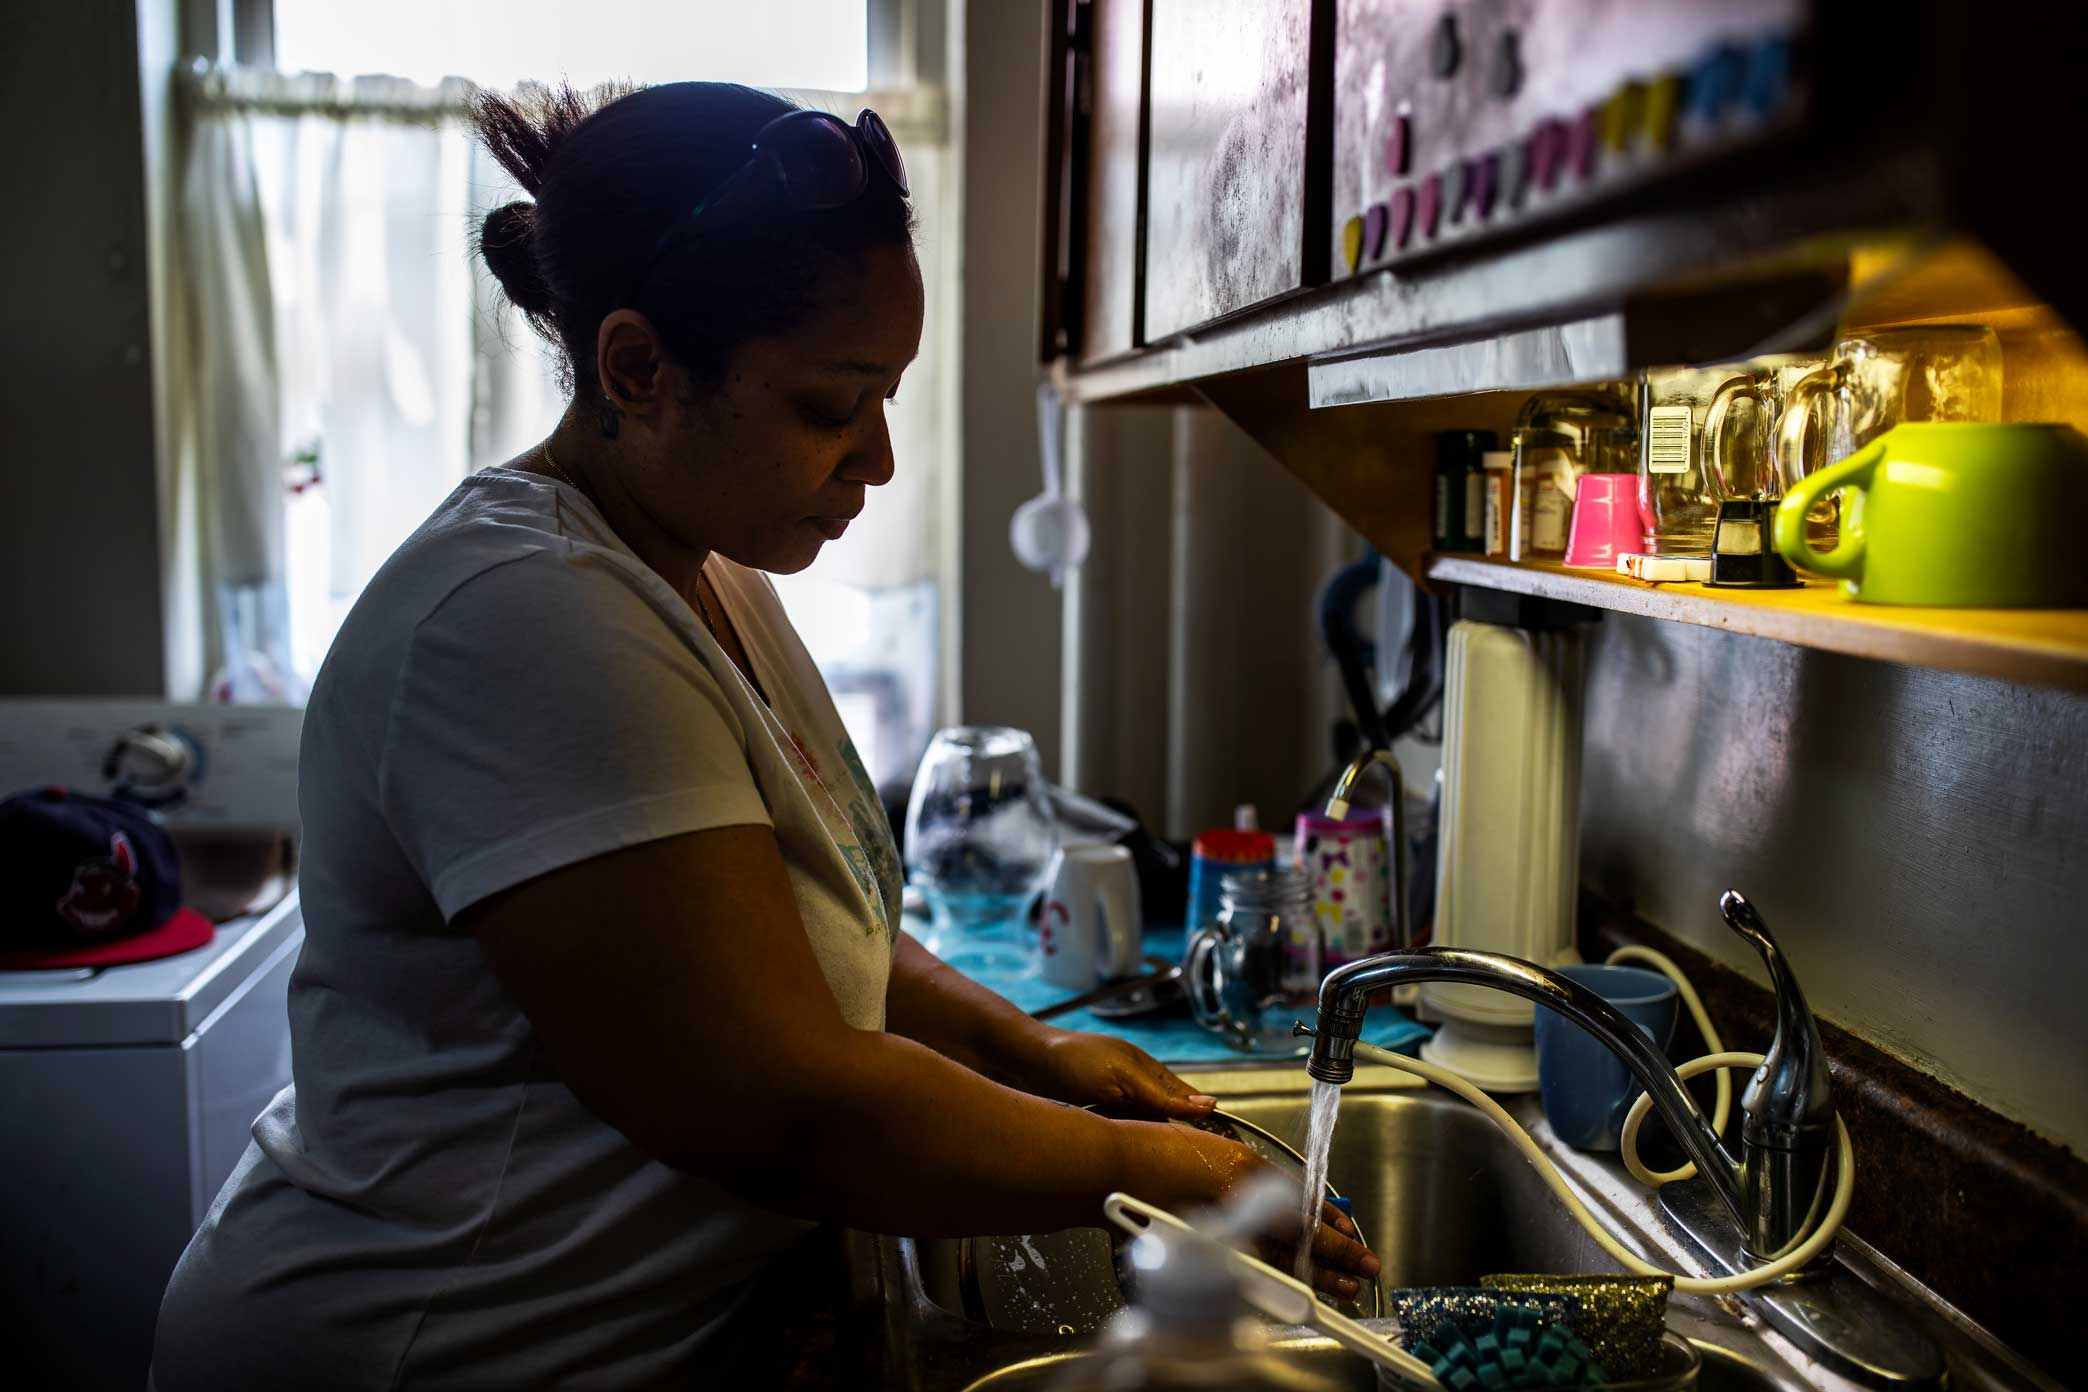 Shaly Ramirez washes dishes in her apartment.